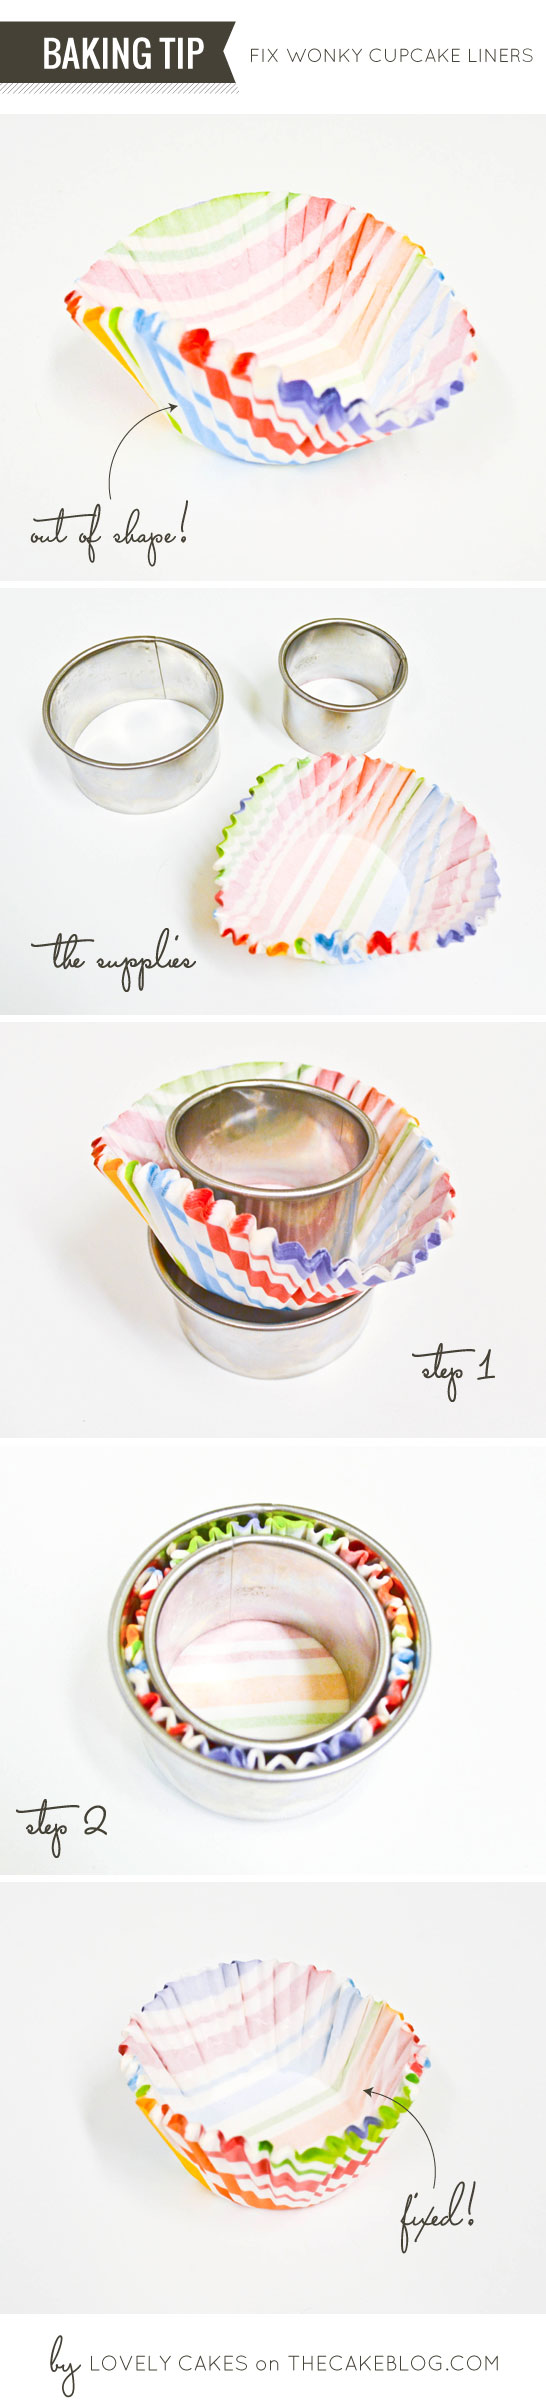 How to Reshape Cupcake Liners  |  by Lovely Cakes on TheCakeBlog.com